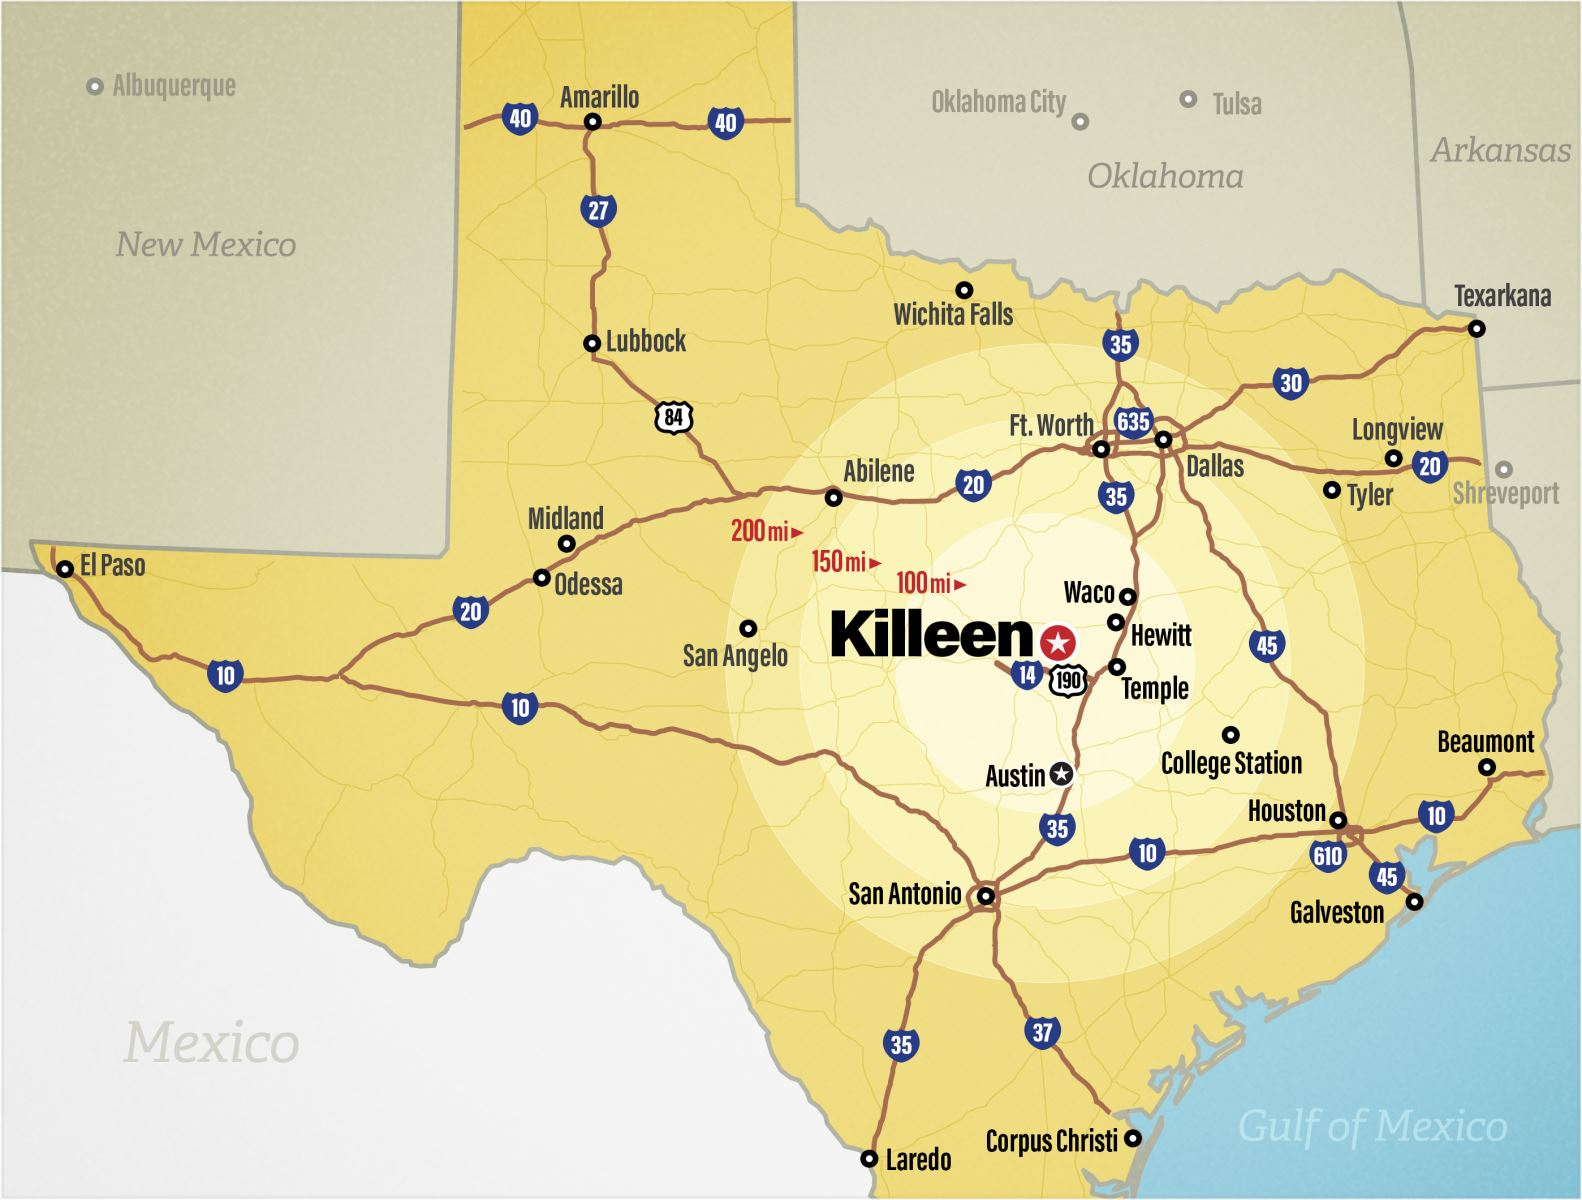 Home | Killeen Economic Development Corporation Killeen Texas Map on fort hood map, killeen police department, killeen city hall, killeen beach, killeen airport, killeen driving school, san angelo tx zip code map, killeen tx, killeen isd, killeen murder,